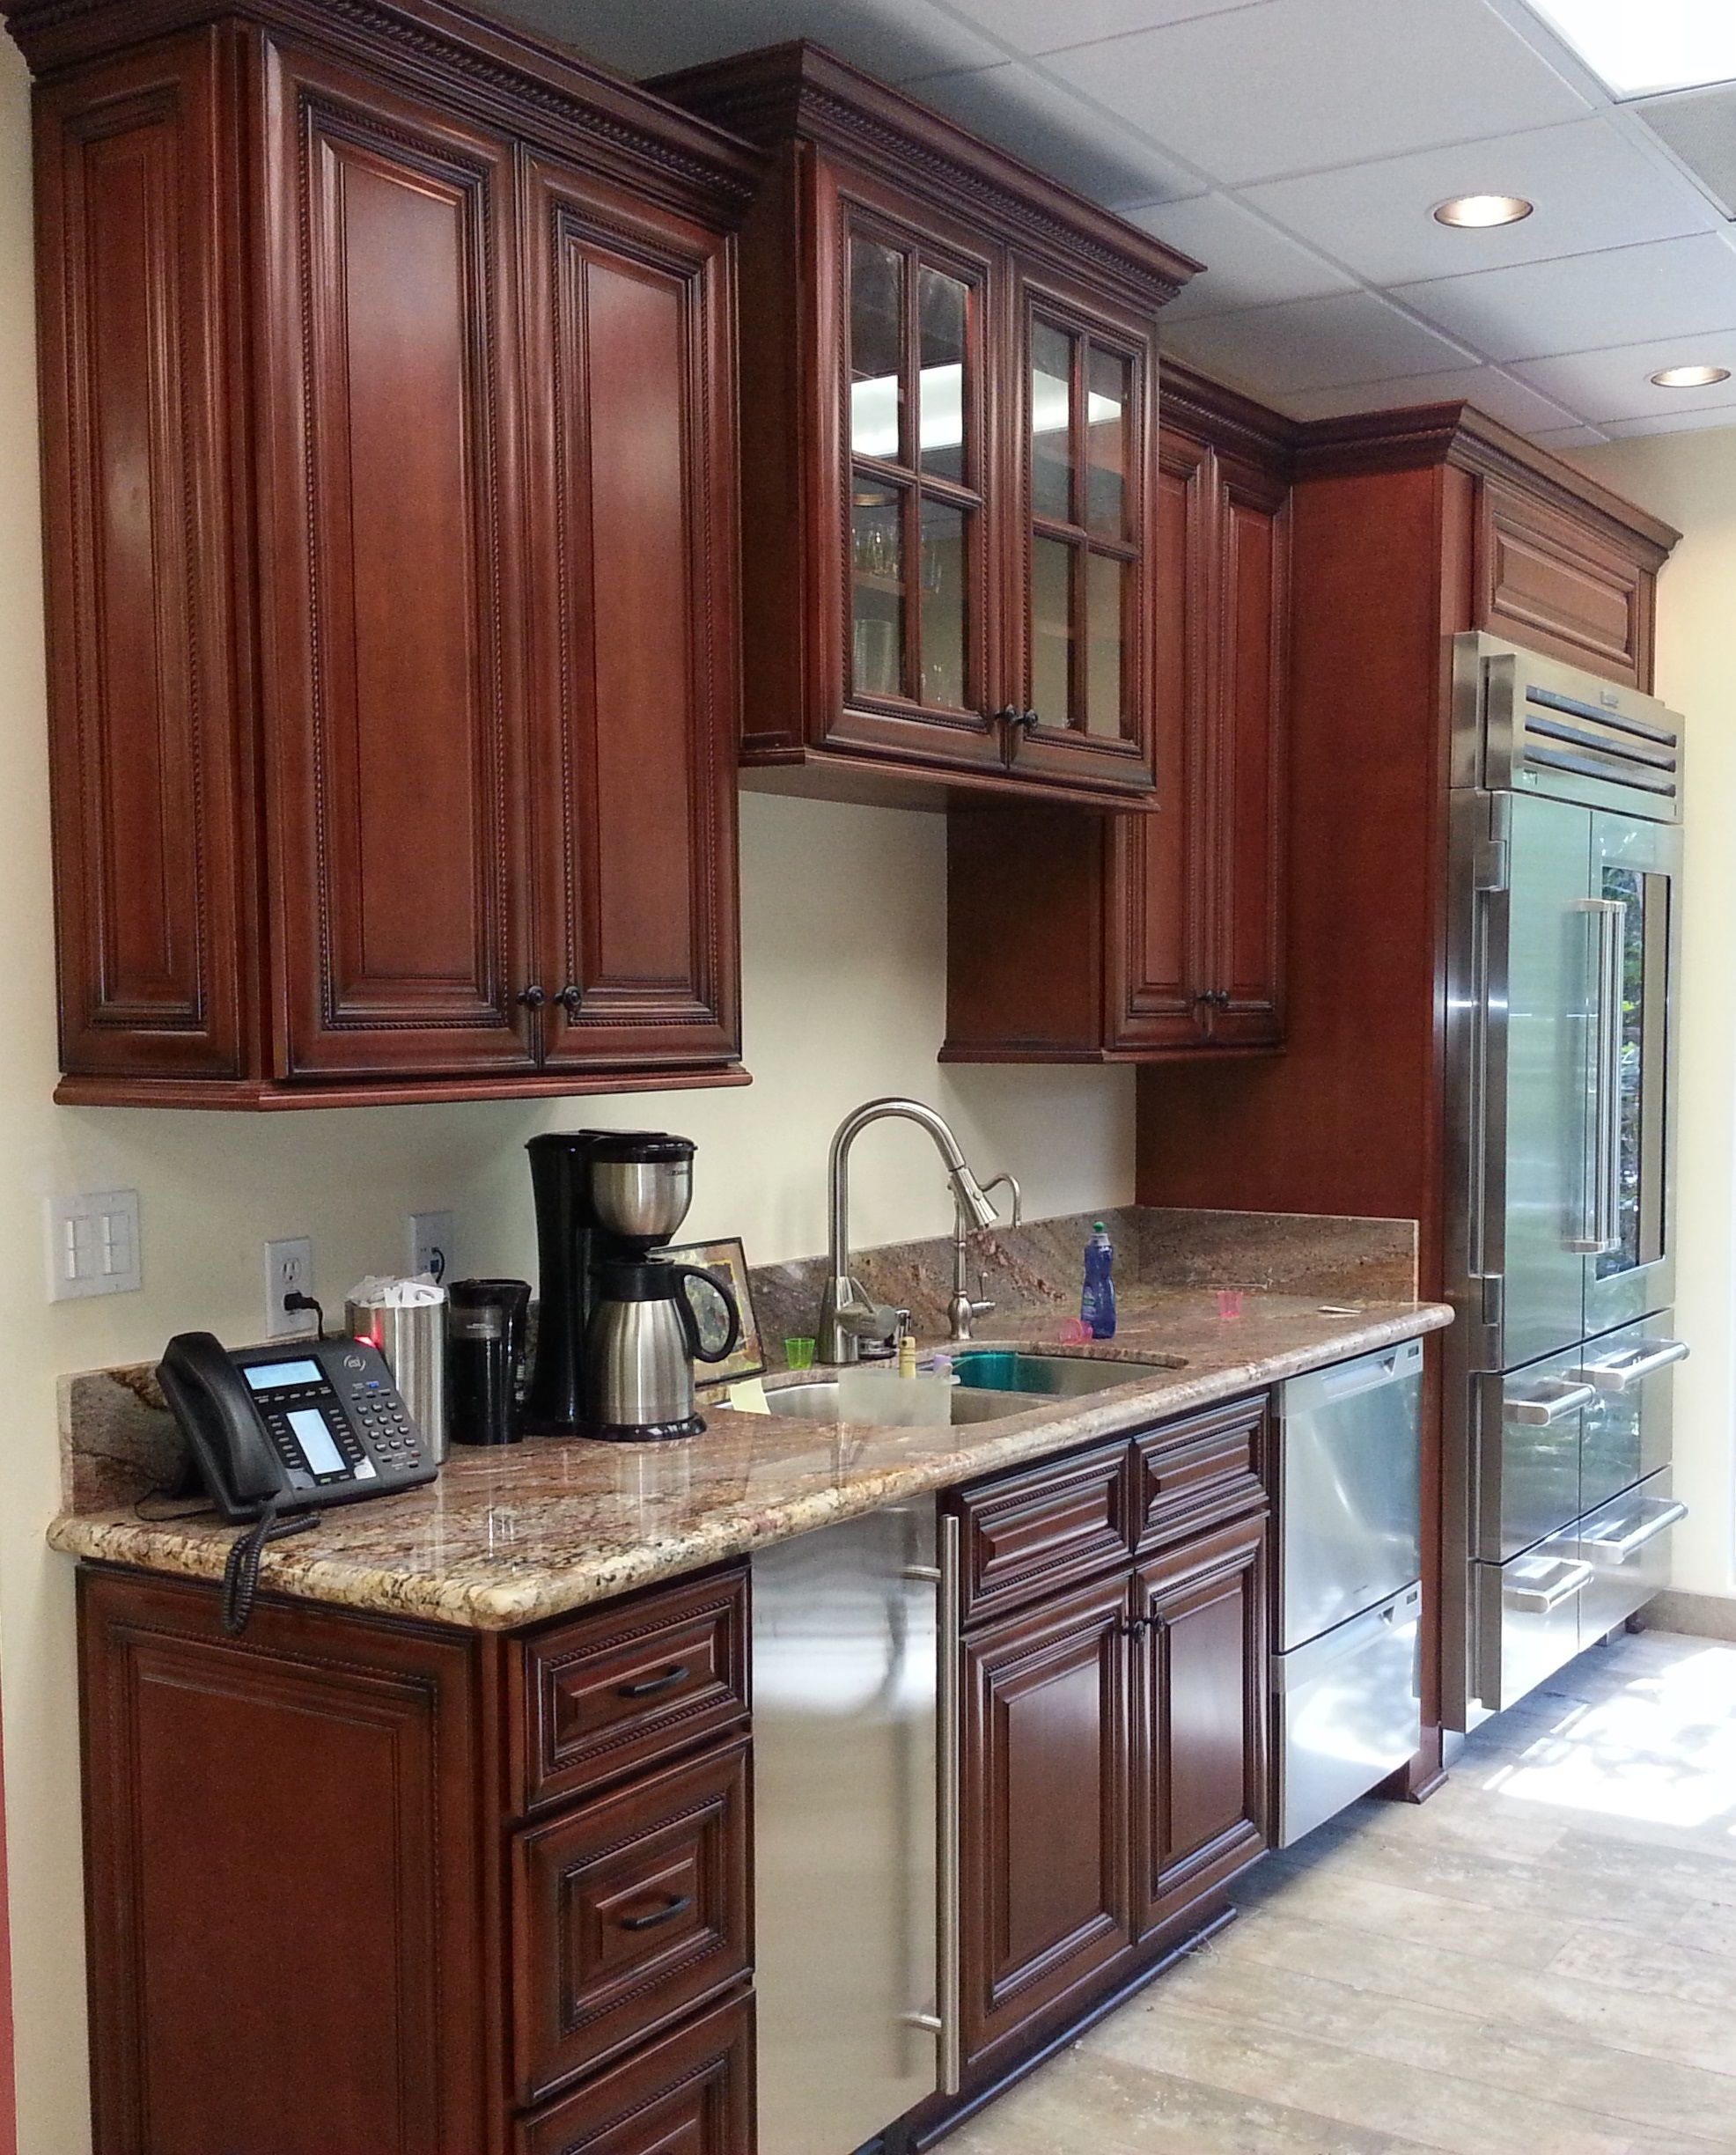 Cherry Kitchen Cabinet Doors Small Kitchen Design With Cherry Wood Cabinets Kitchen